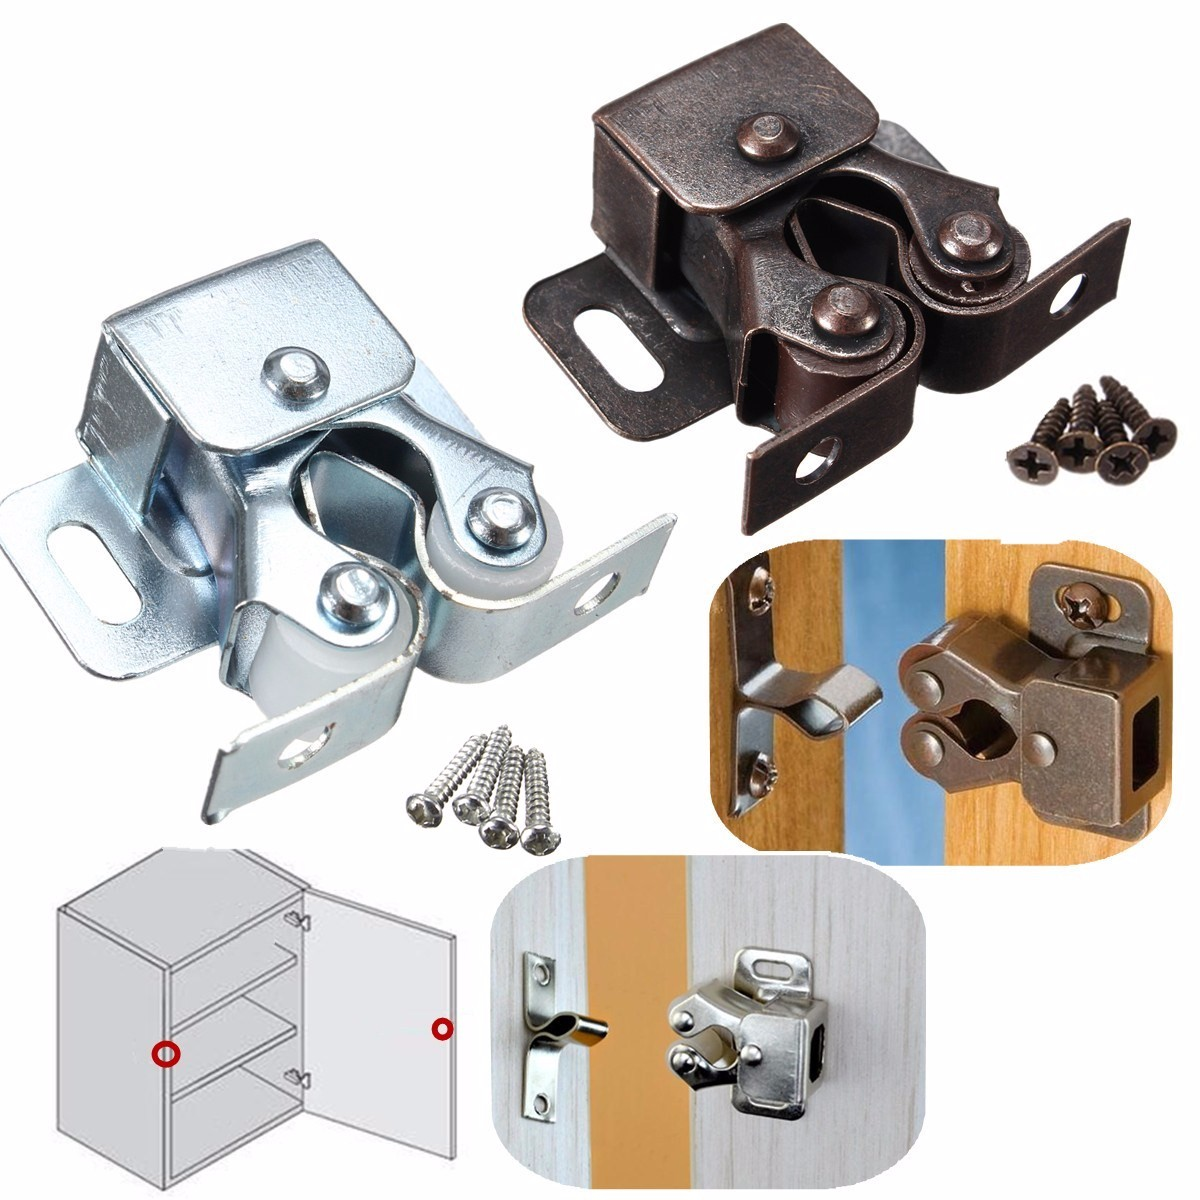 Double Roller Catch Cupboard Cabinet Door Furniture Latch Hardware with Spear Strike